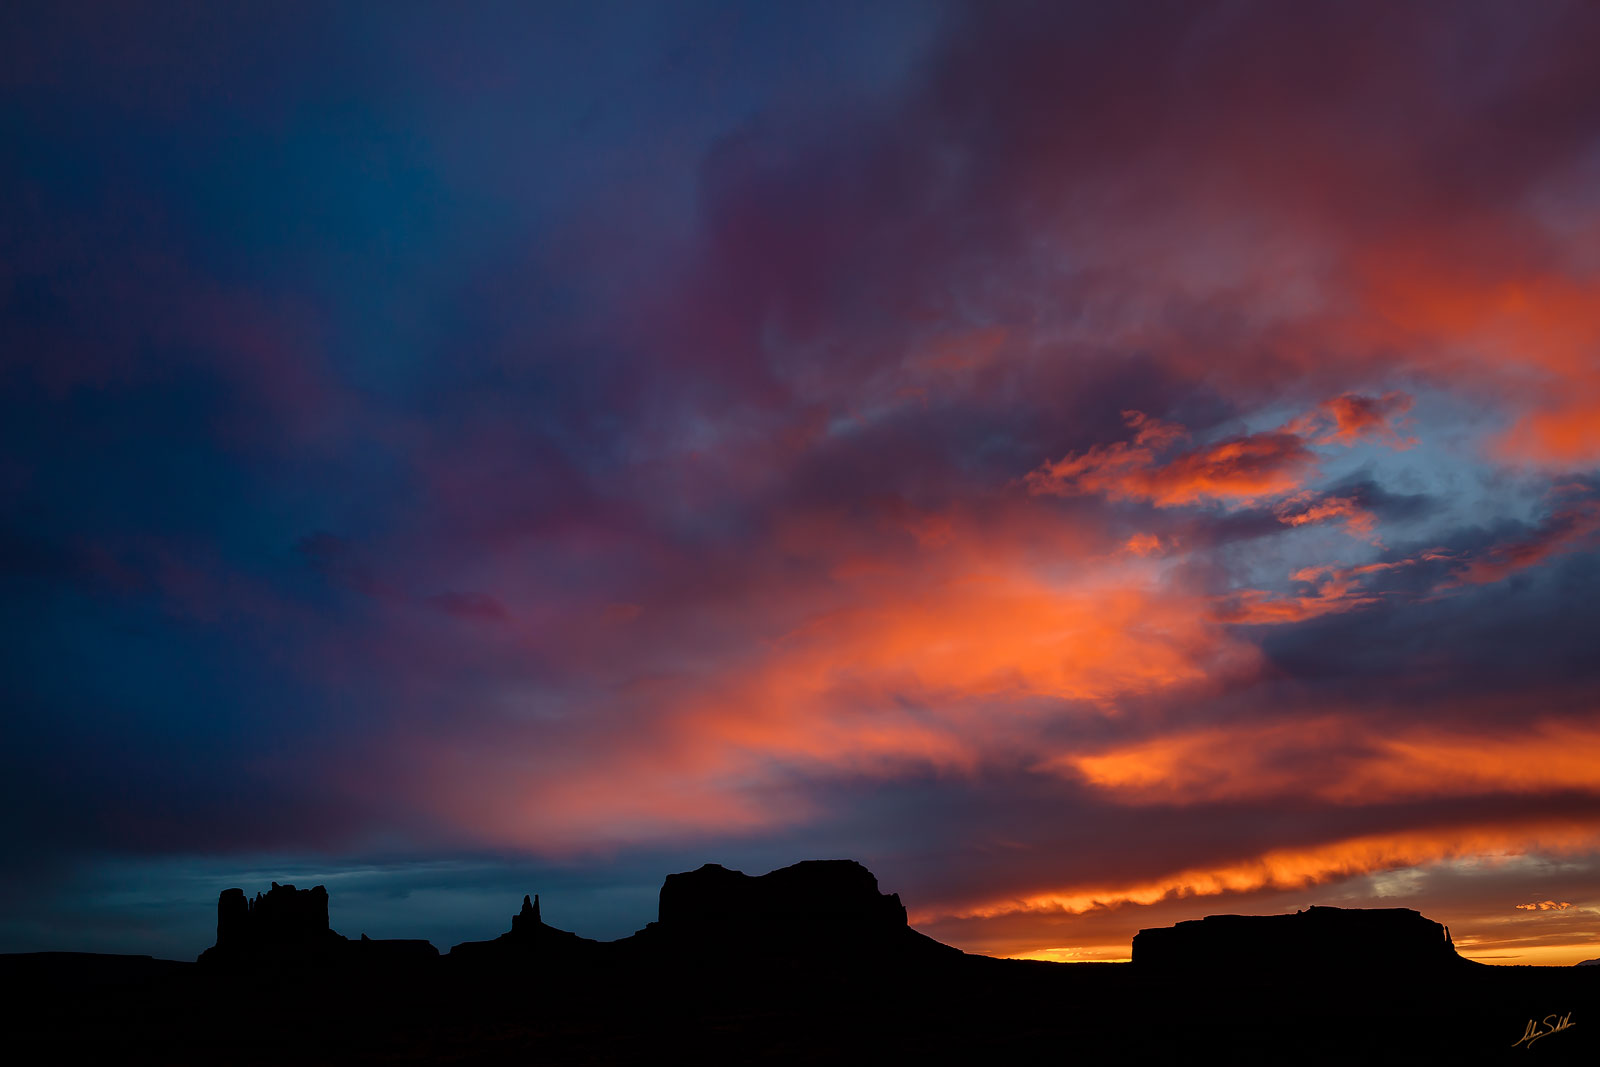 AZ, American Southwest, American West, Arizona, Colorado Plateau, Iconic, Mittens, Monument Valley, Navajo Nation, Southwest, Sunset over Monument Valley, Tribal Lands, Western, Western Lands, photo